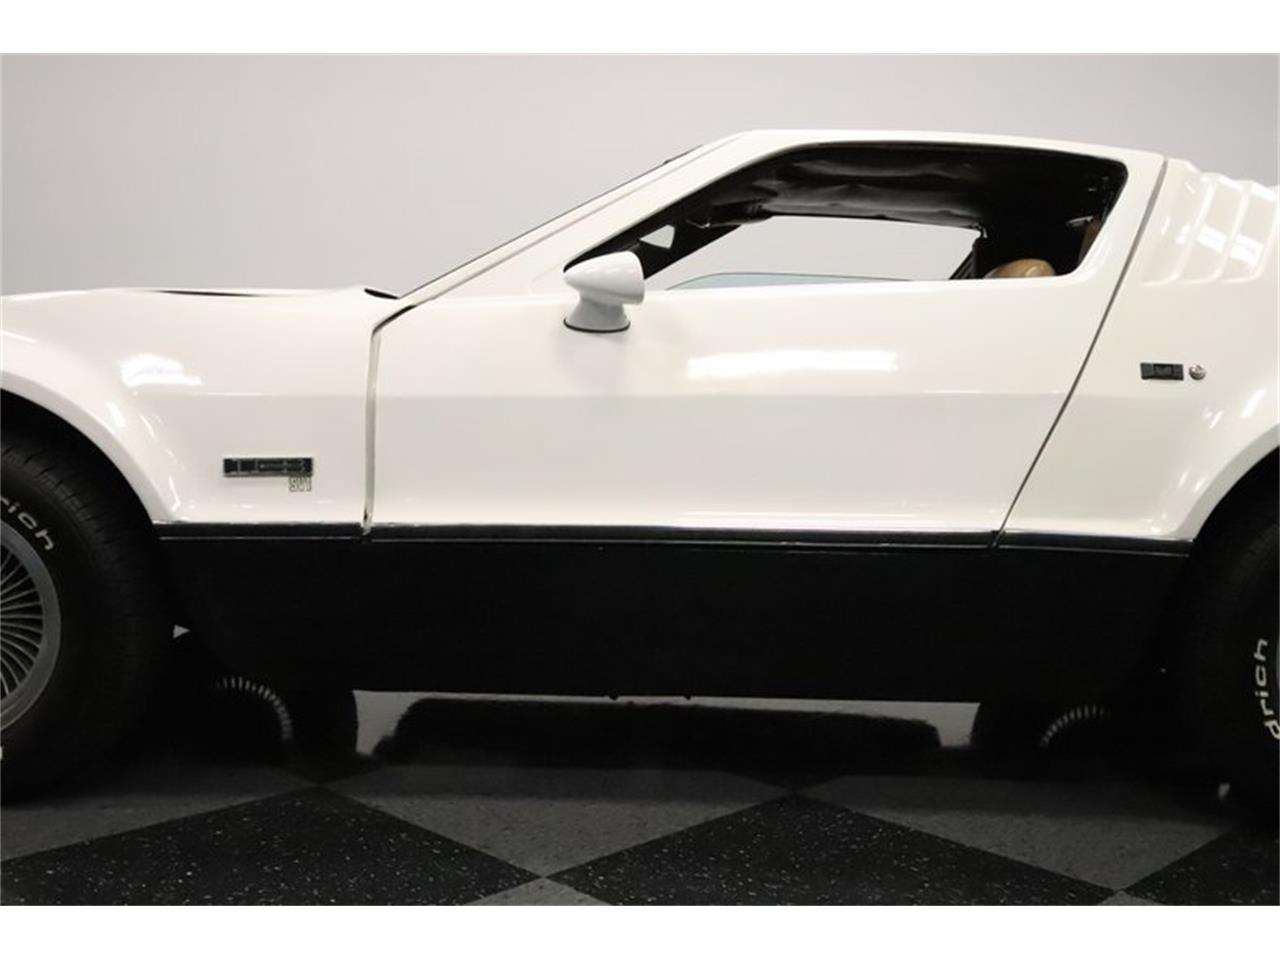 Large Picture of '74 Bricklin SV 1 located in Arizona - $18,995.00 Offered by Streetside Classics - Phoenix - OT2I